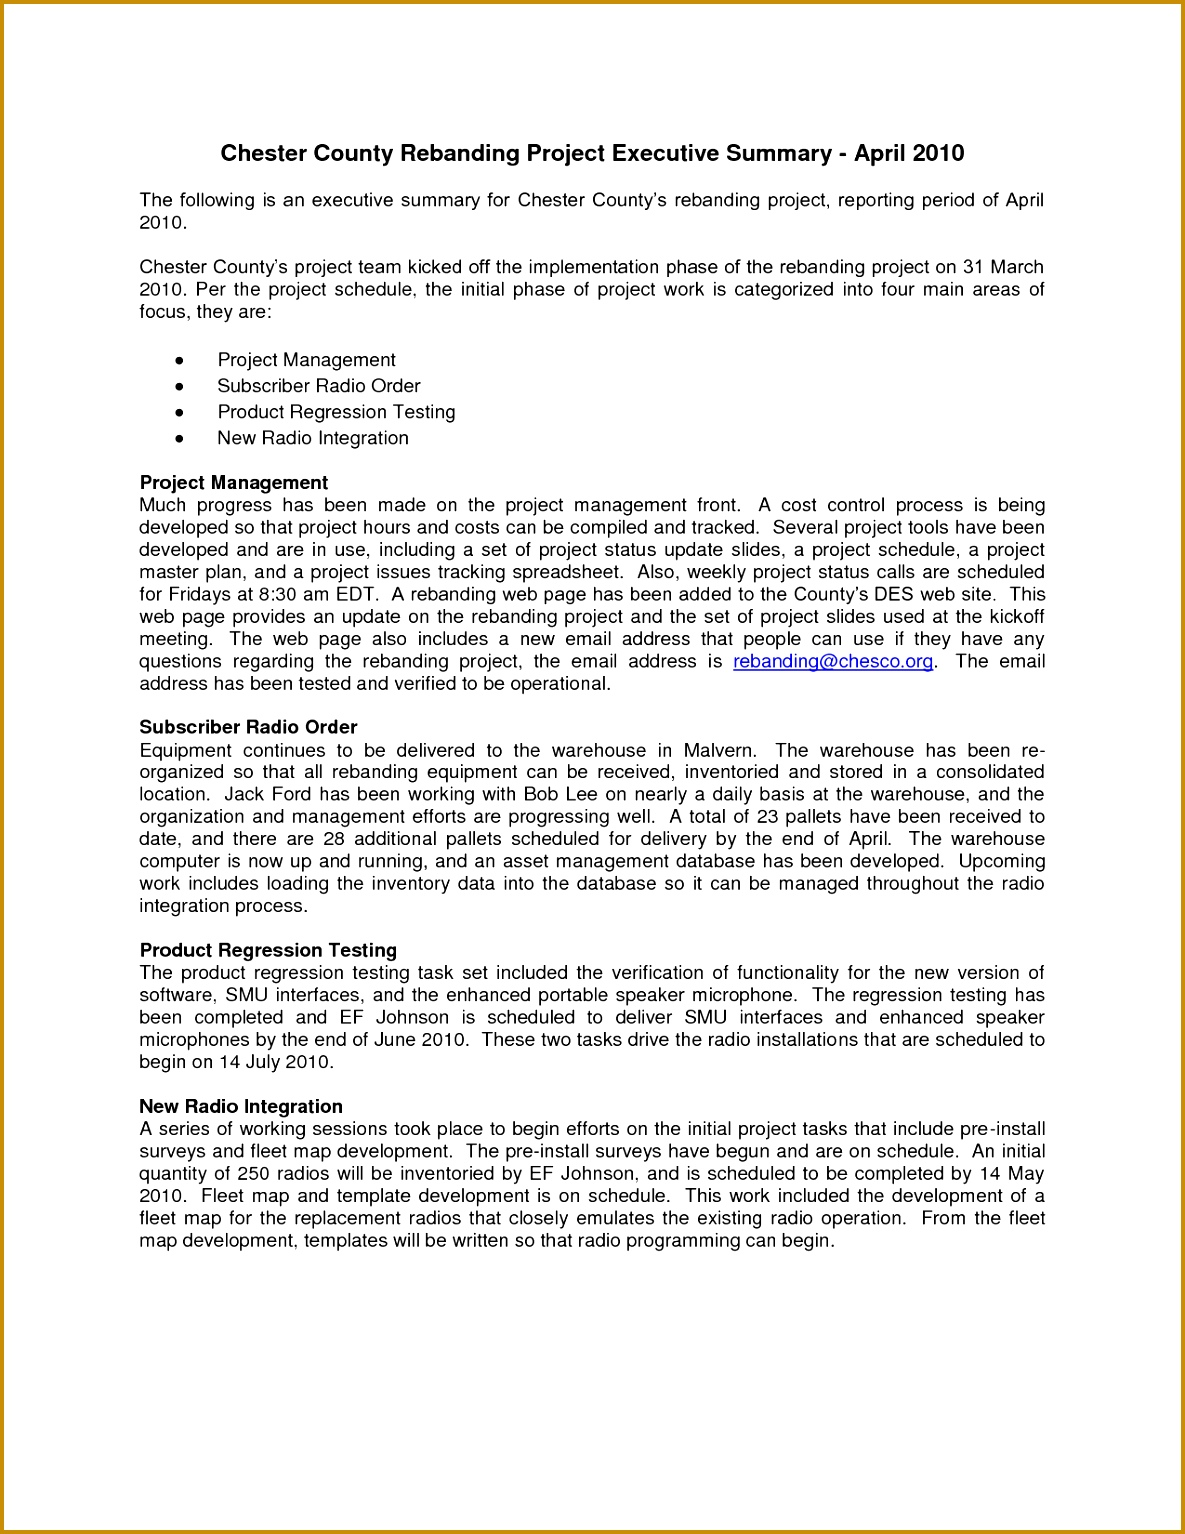 project management executive summary template 15341185